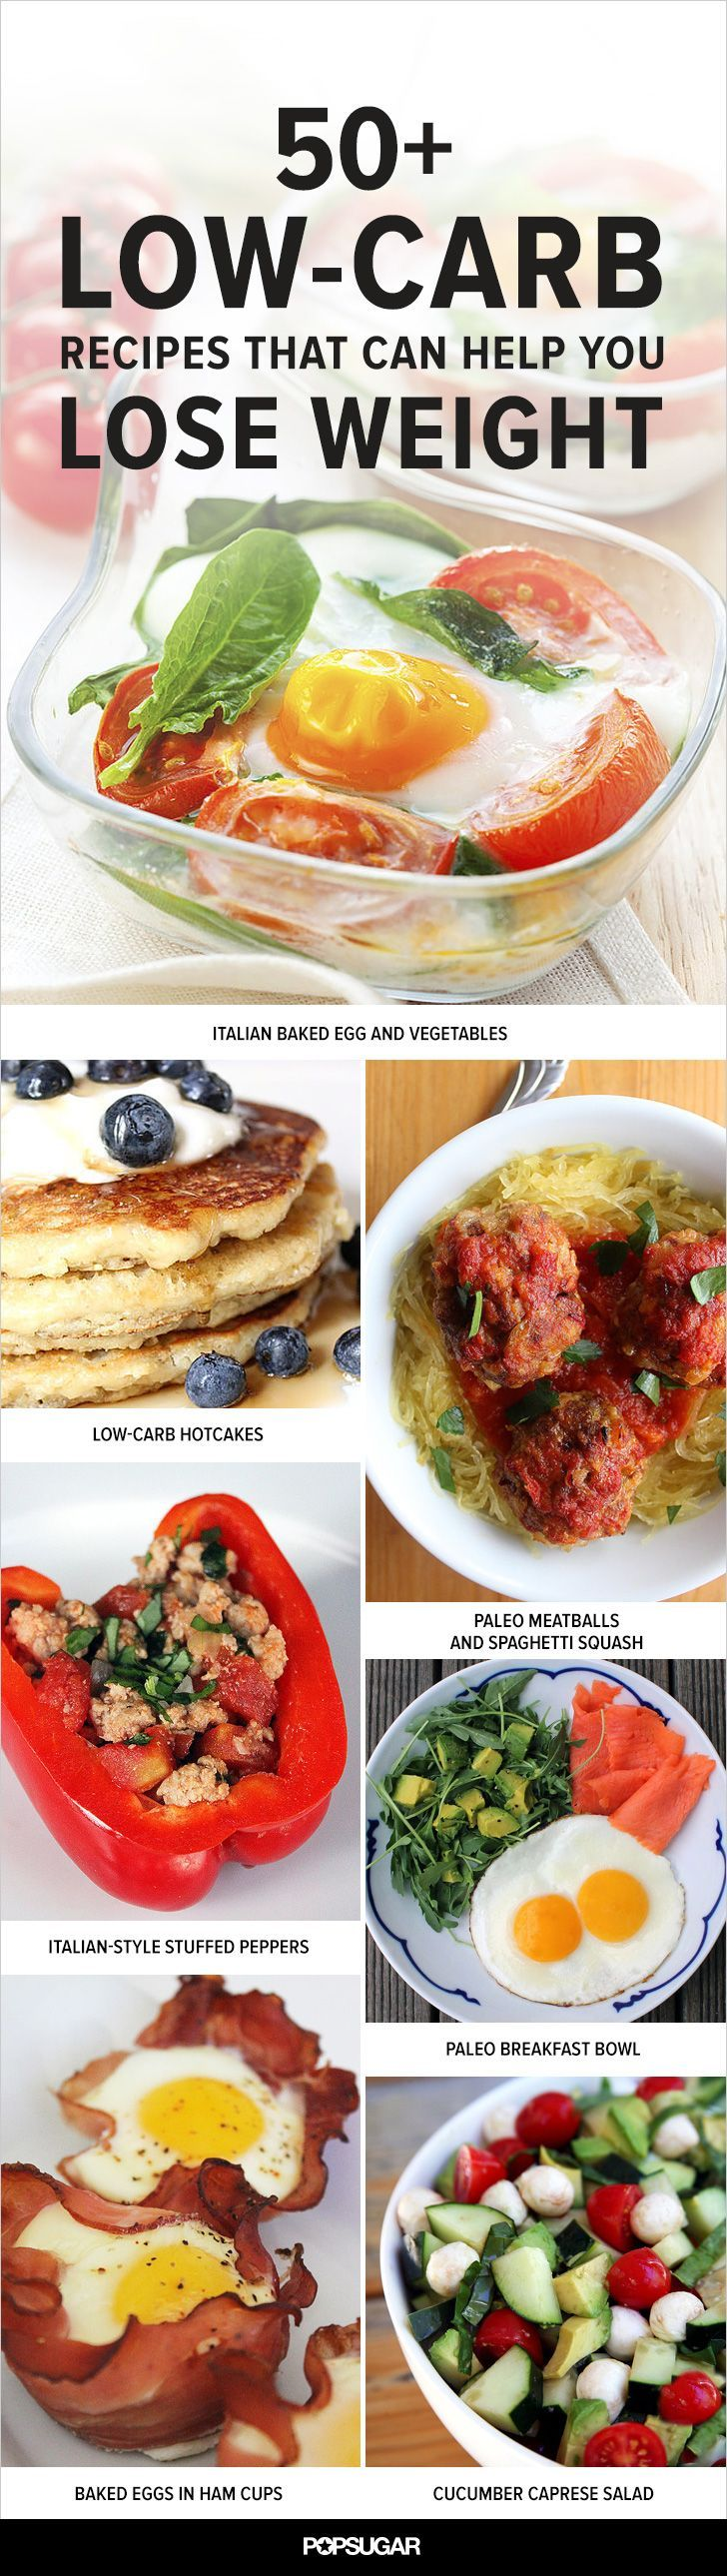 Use these 50+ recipes to help you on your path to weight-loss!